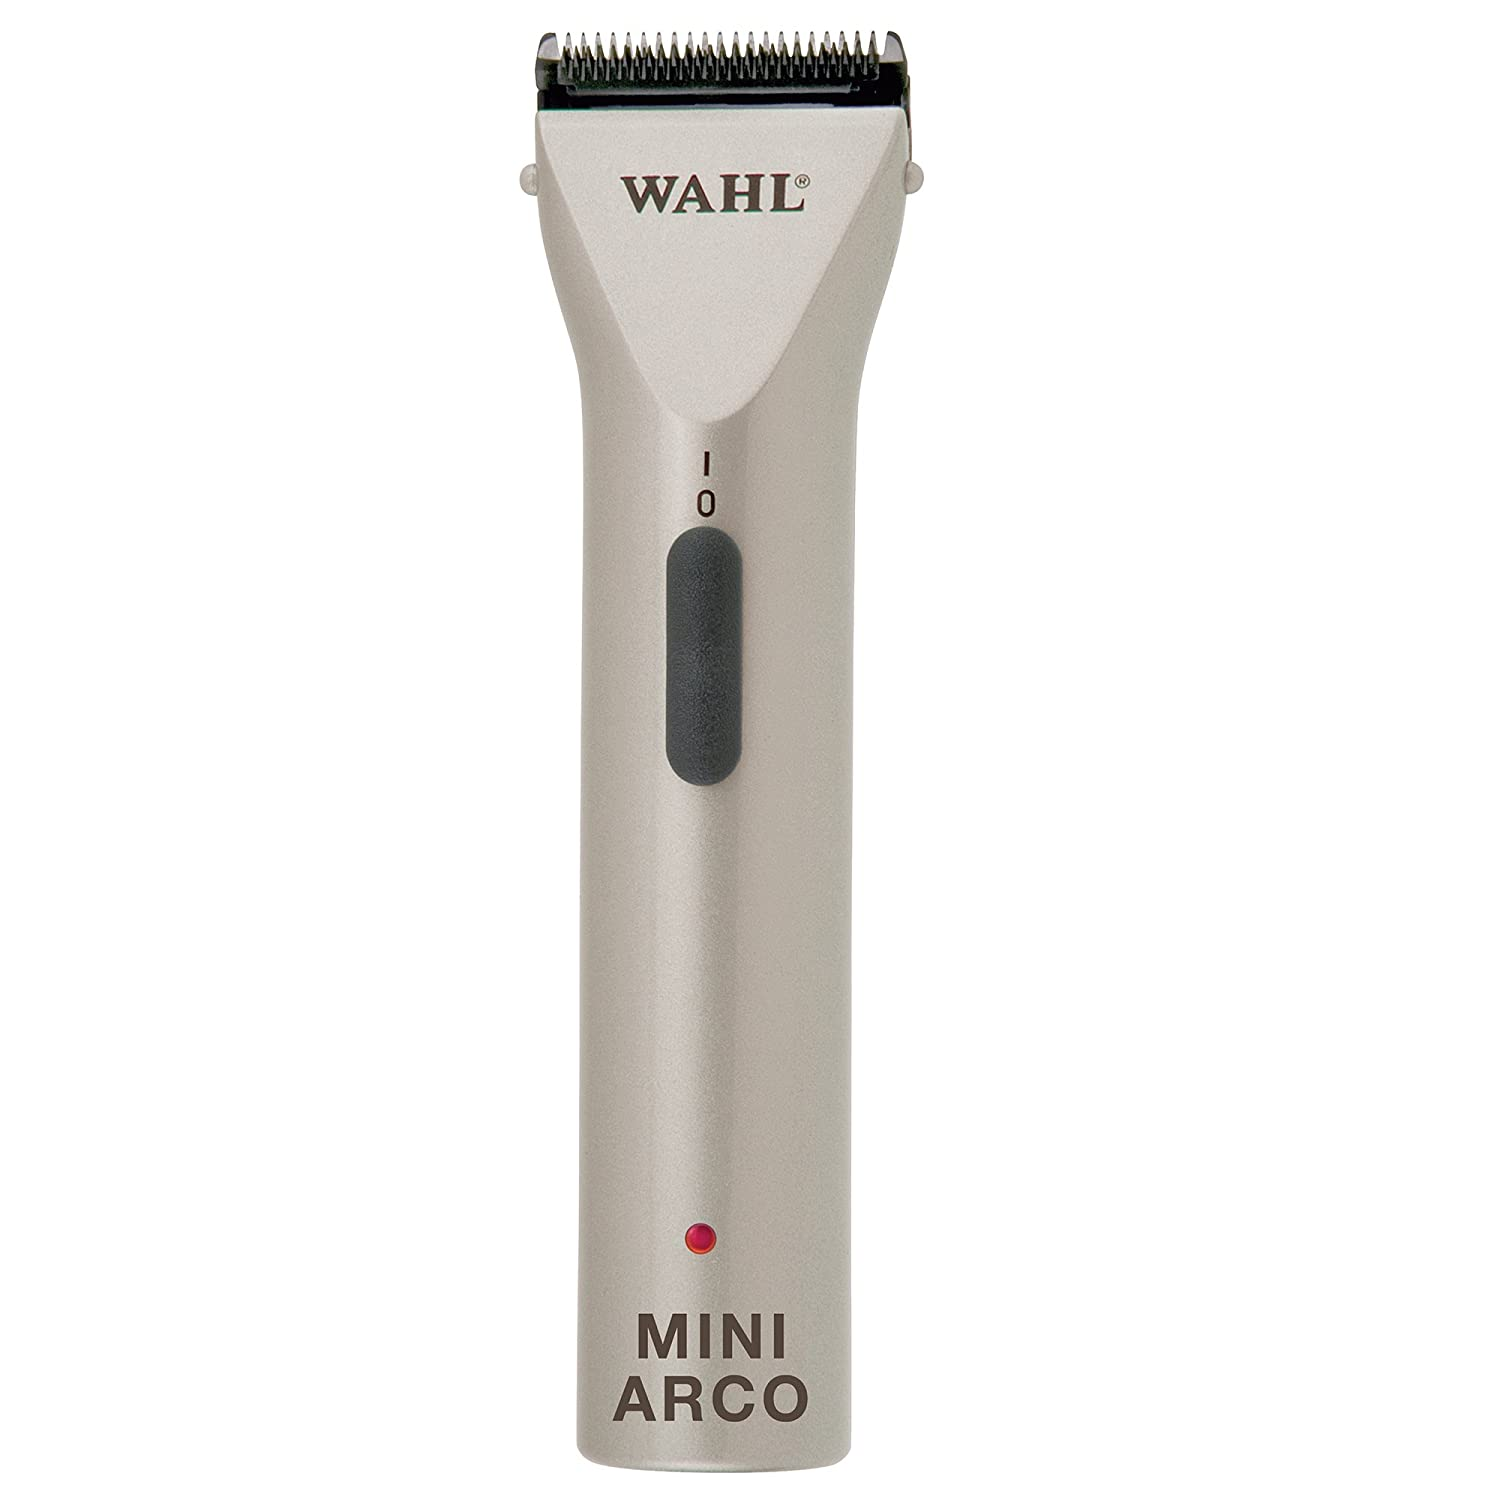 Touch-Up Trimmer · Super Pocket Pro Trimmer · Mini Figura Trimmer · MiniArco Trimmer · BravMini+ Trimmer · Arco Clipper